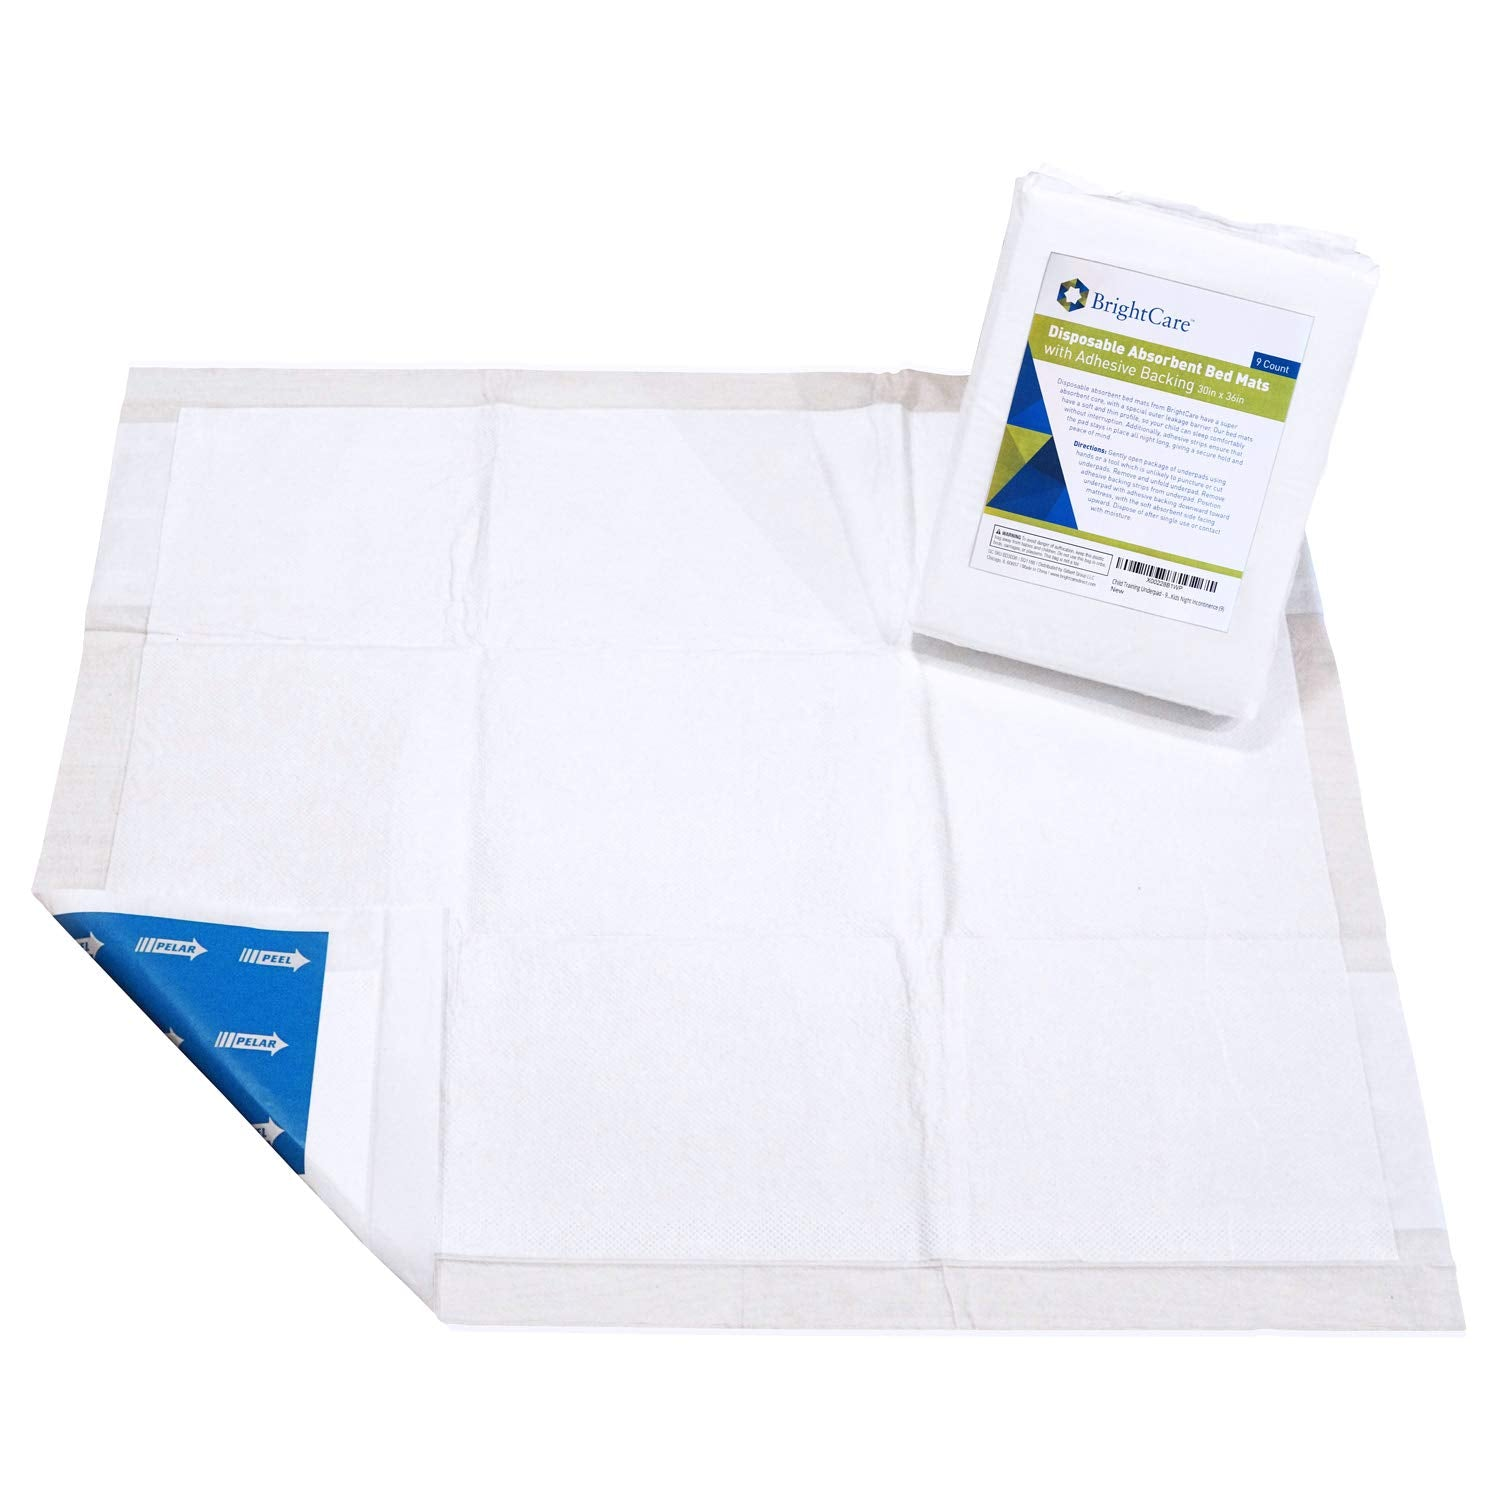 Disposable Absorbent Waterproof Bed Mats With Adhesive 30wx36l Und Brightcare